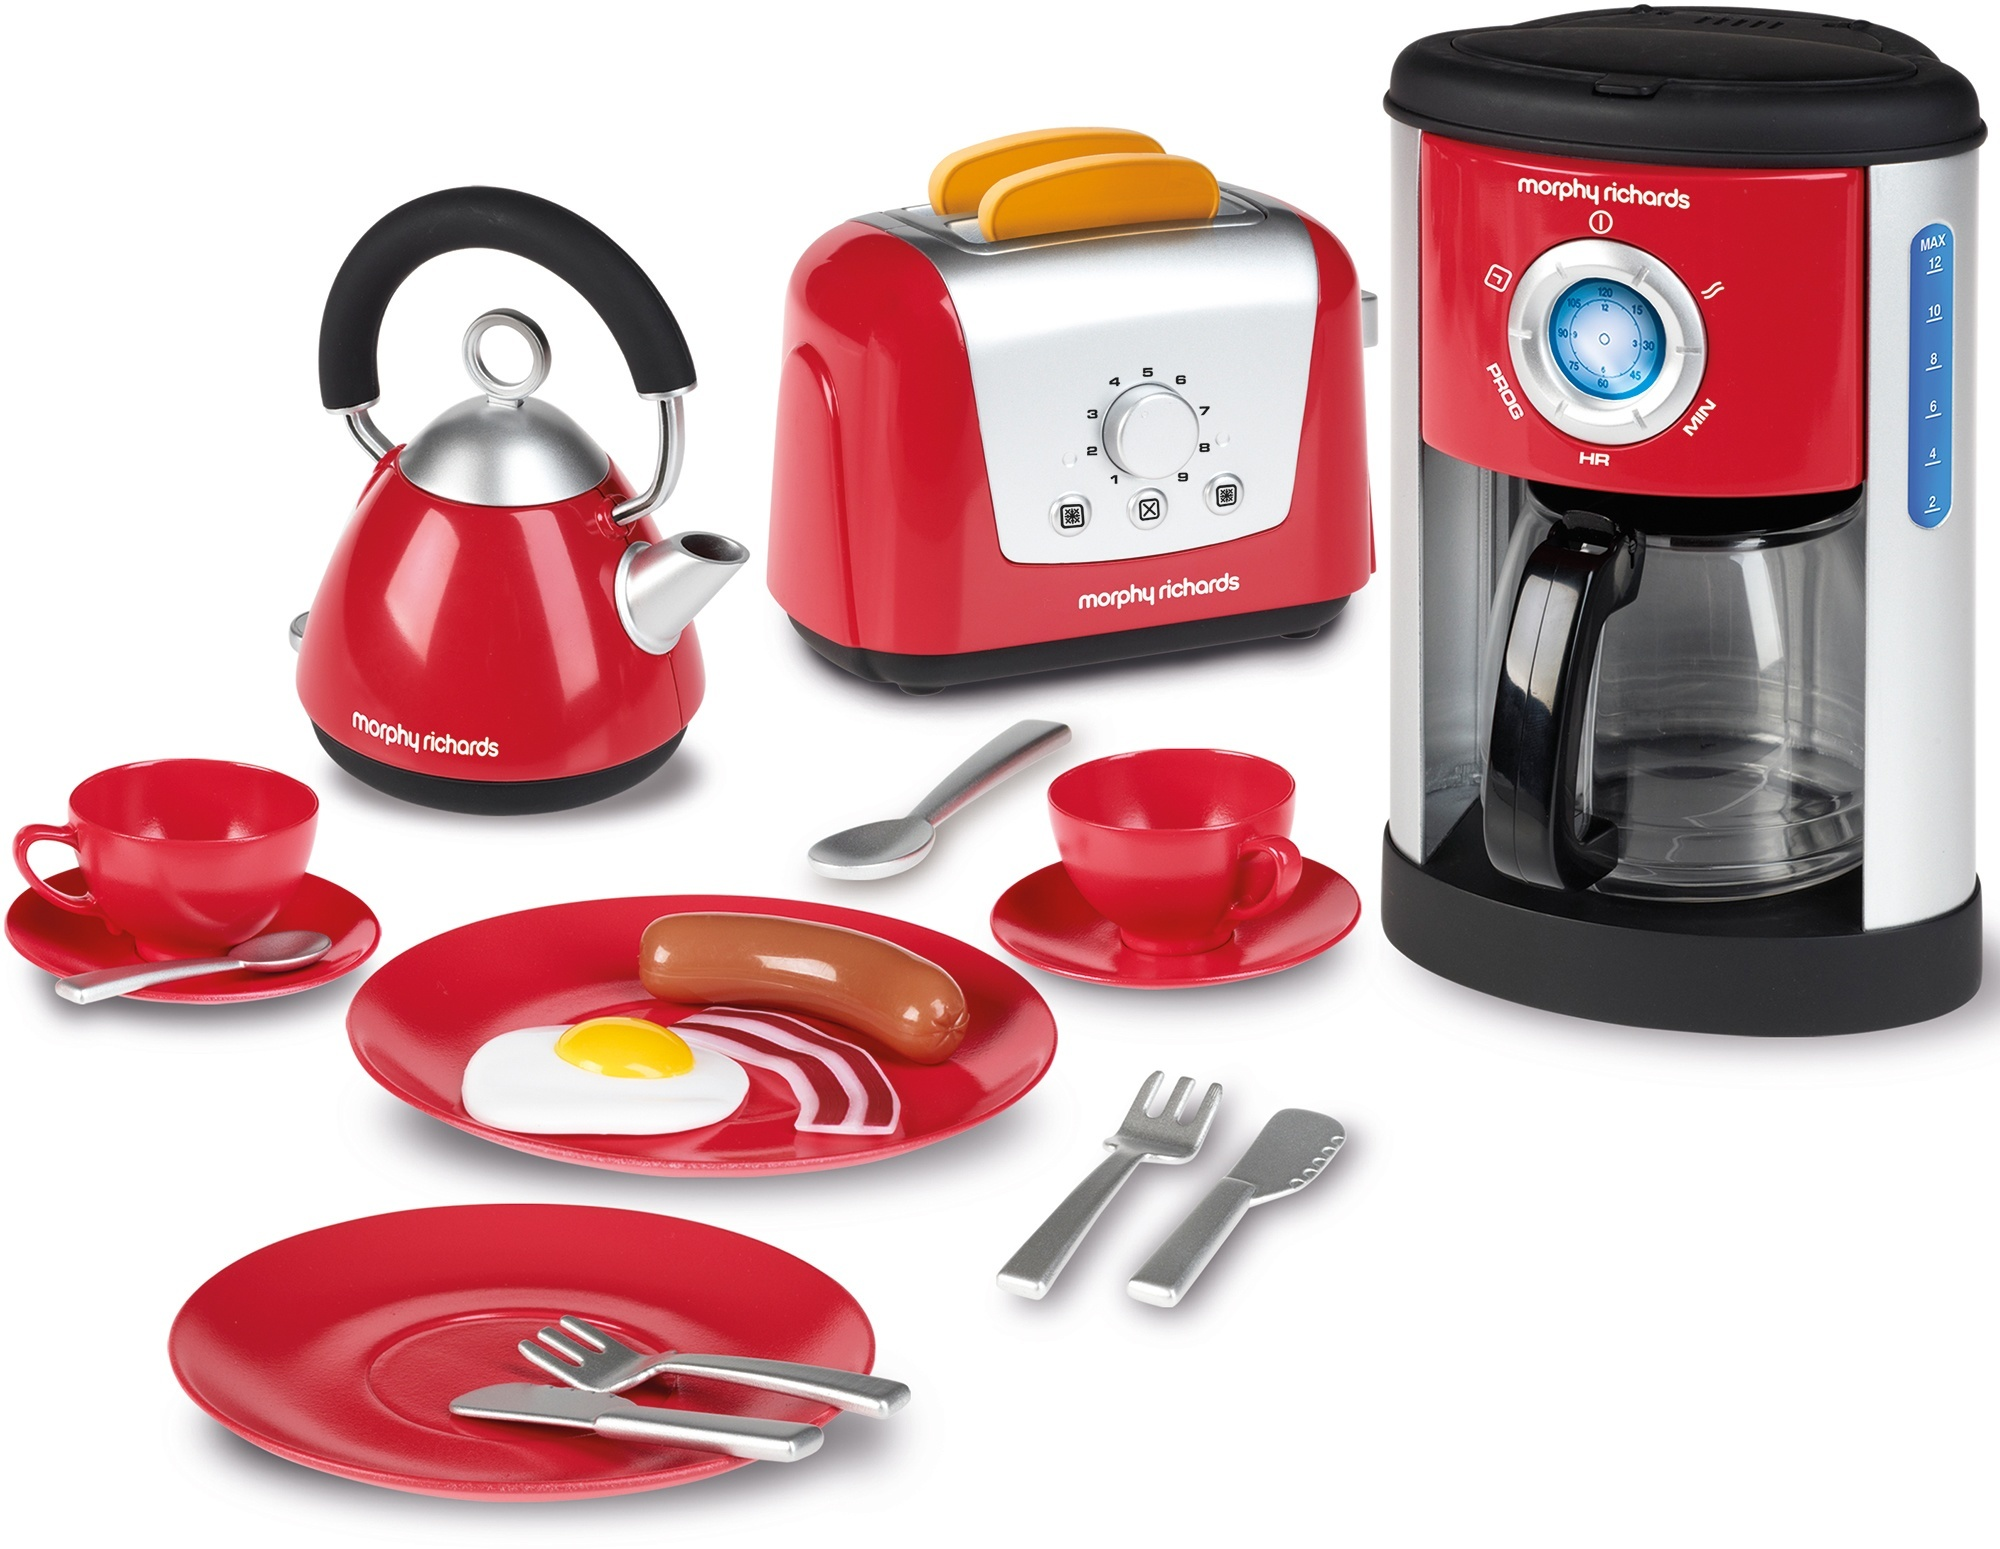 Morphy Richards Play Kitchen Set